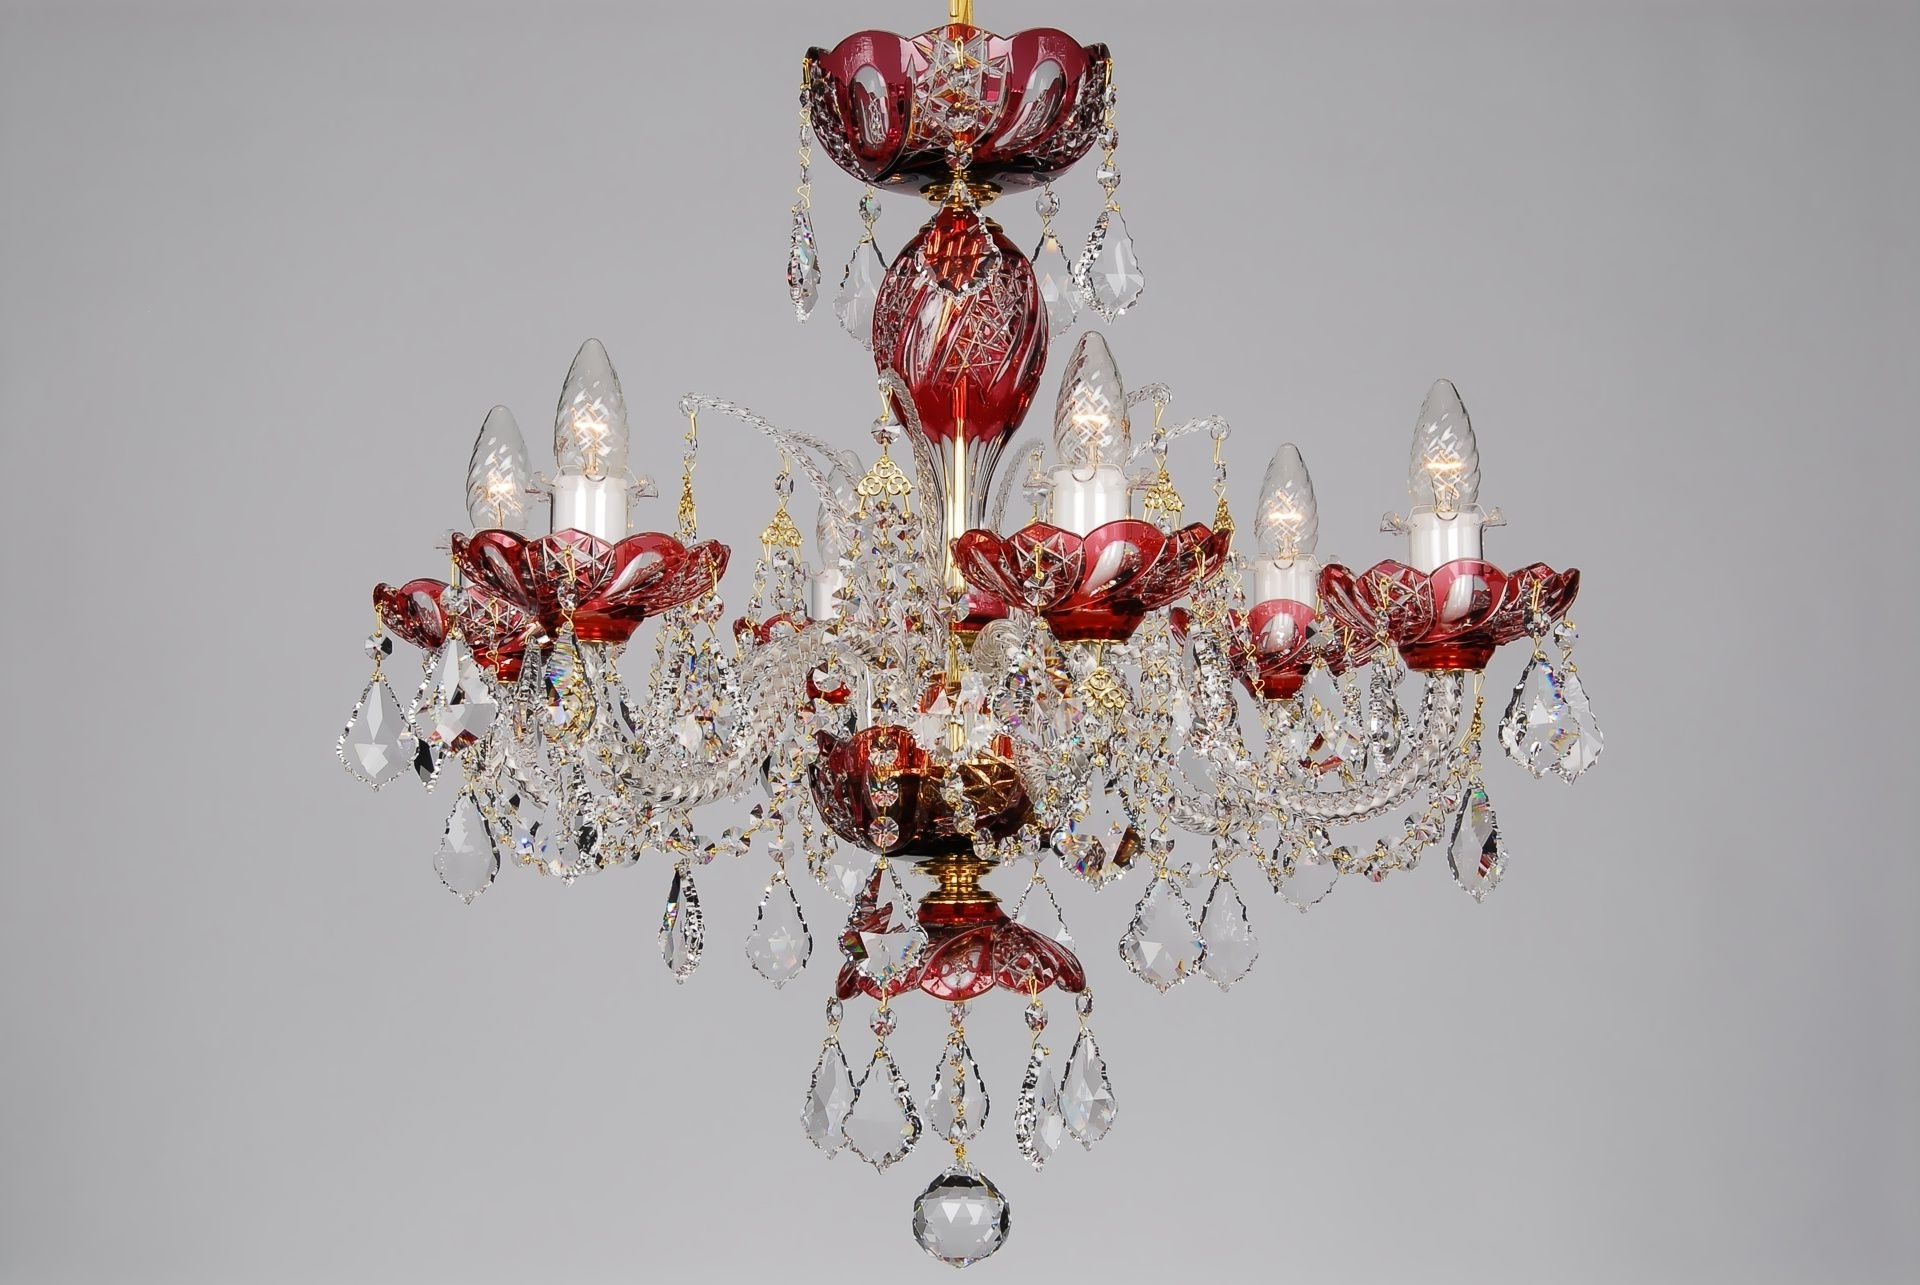 Well Known A Small Red Crystal Chandelier Decorated With Swarovski Trimmings With Regard To Red Chandeliers (View 13 of 15)